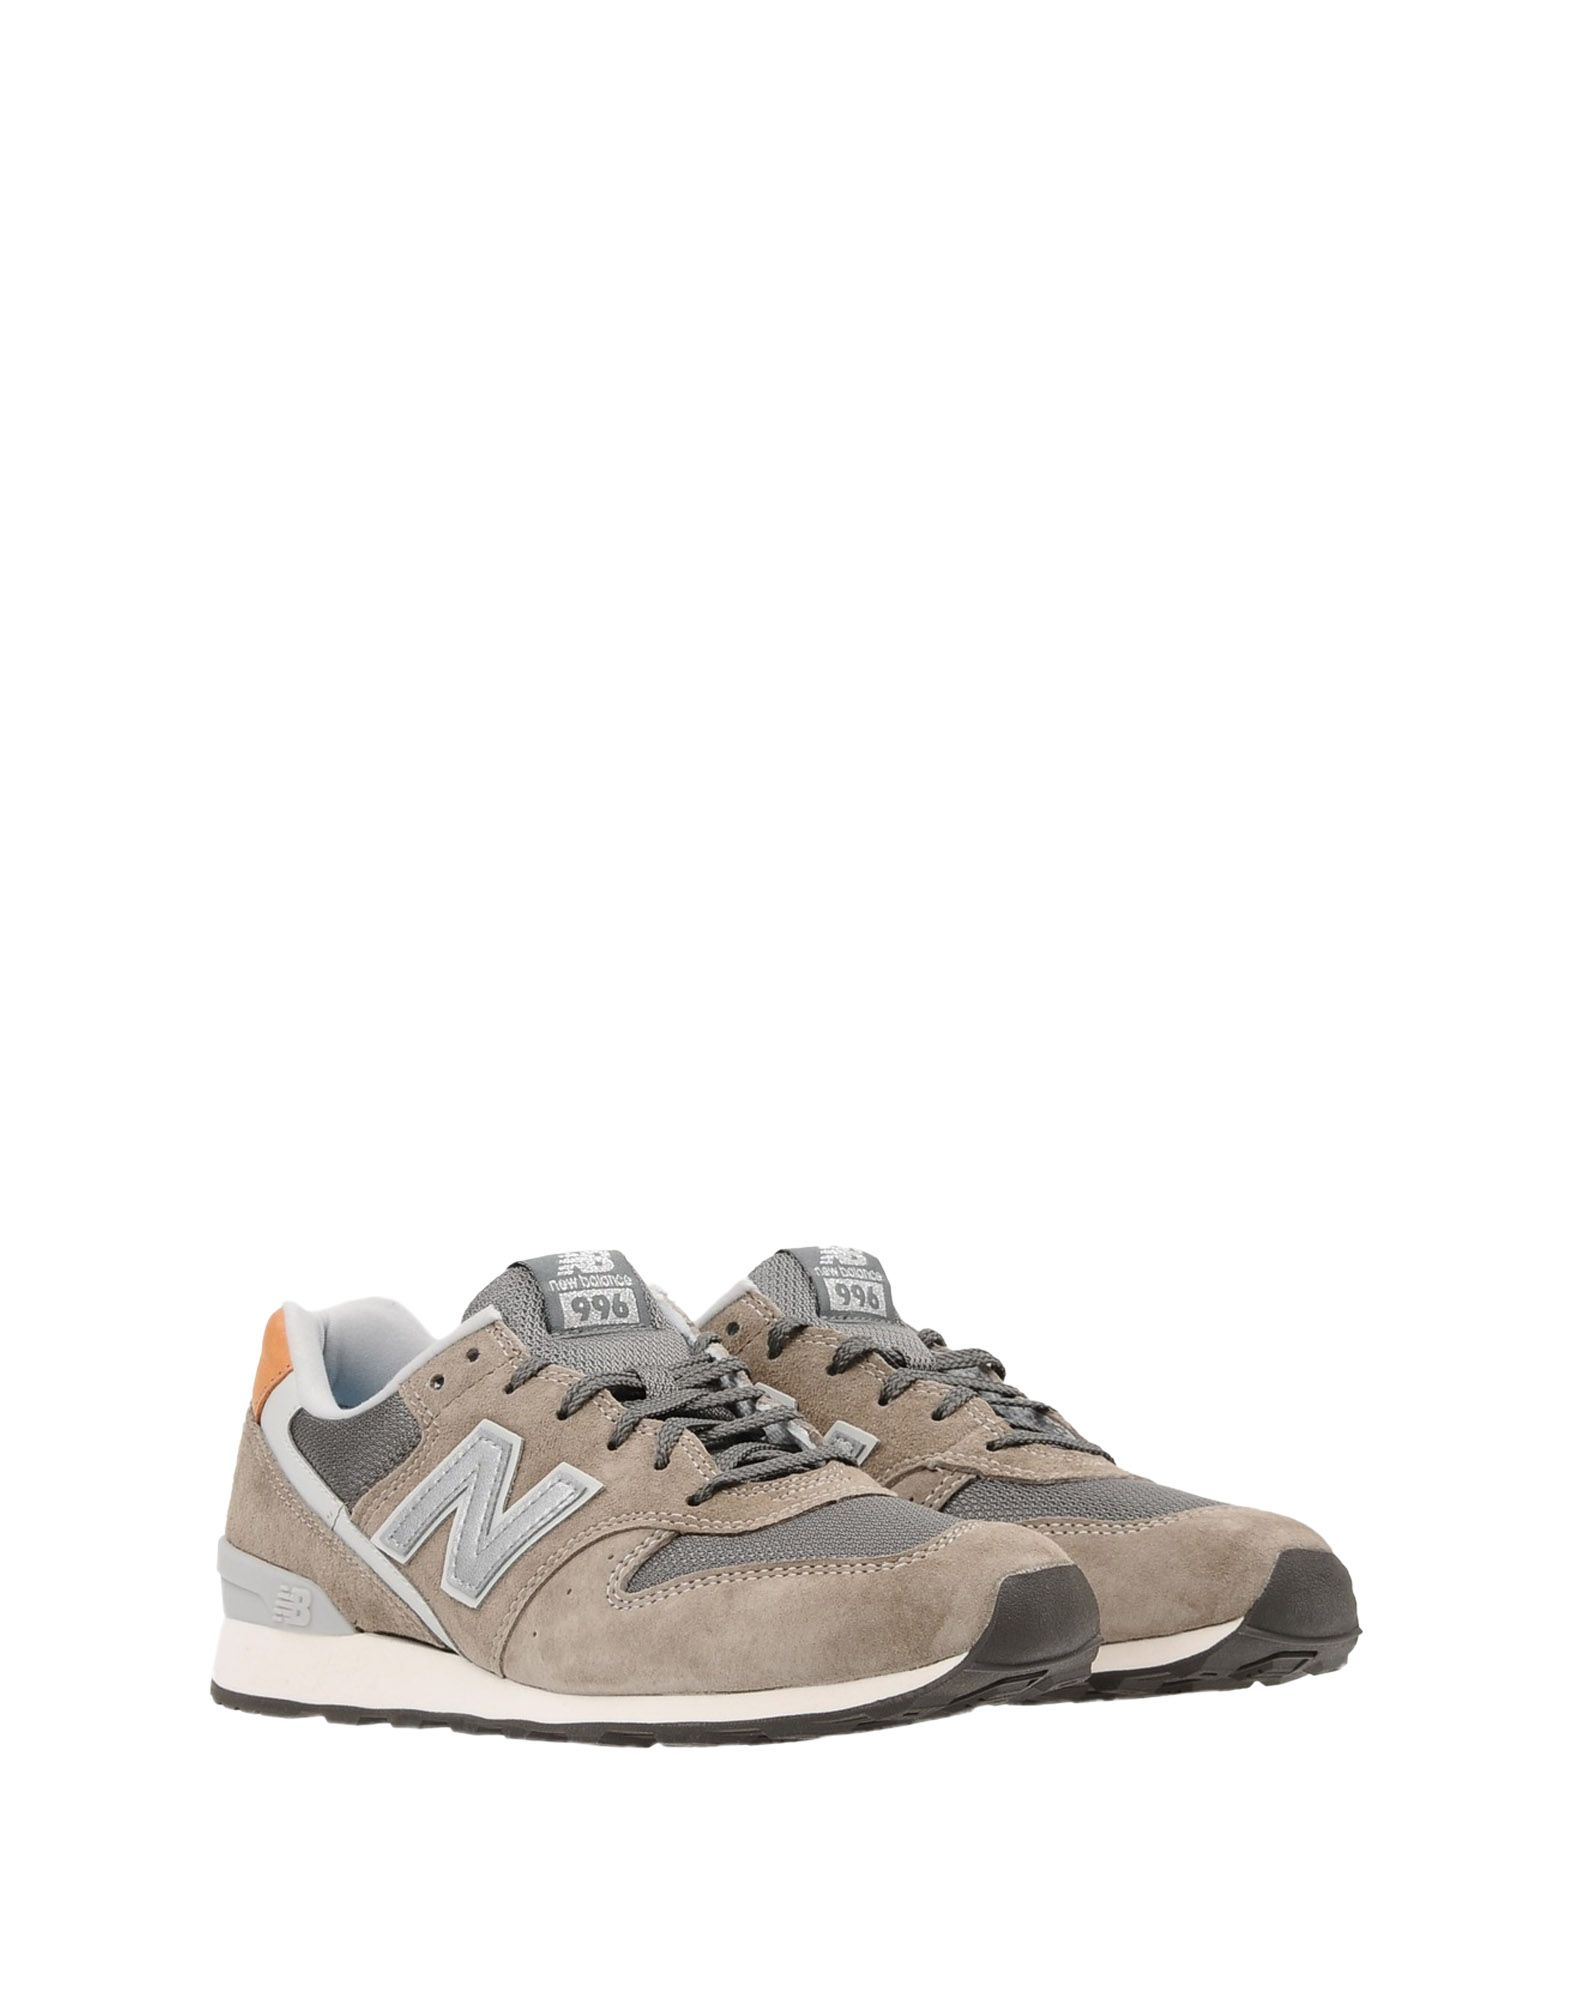 Sneakers New Balance 996 Carryover - Femme - Sneakers New Balance sur